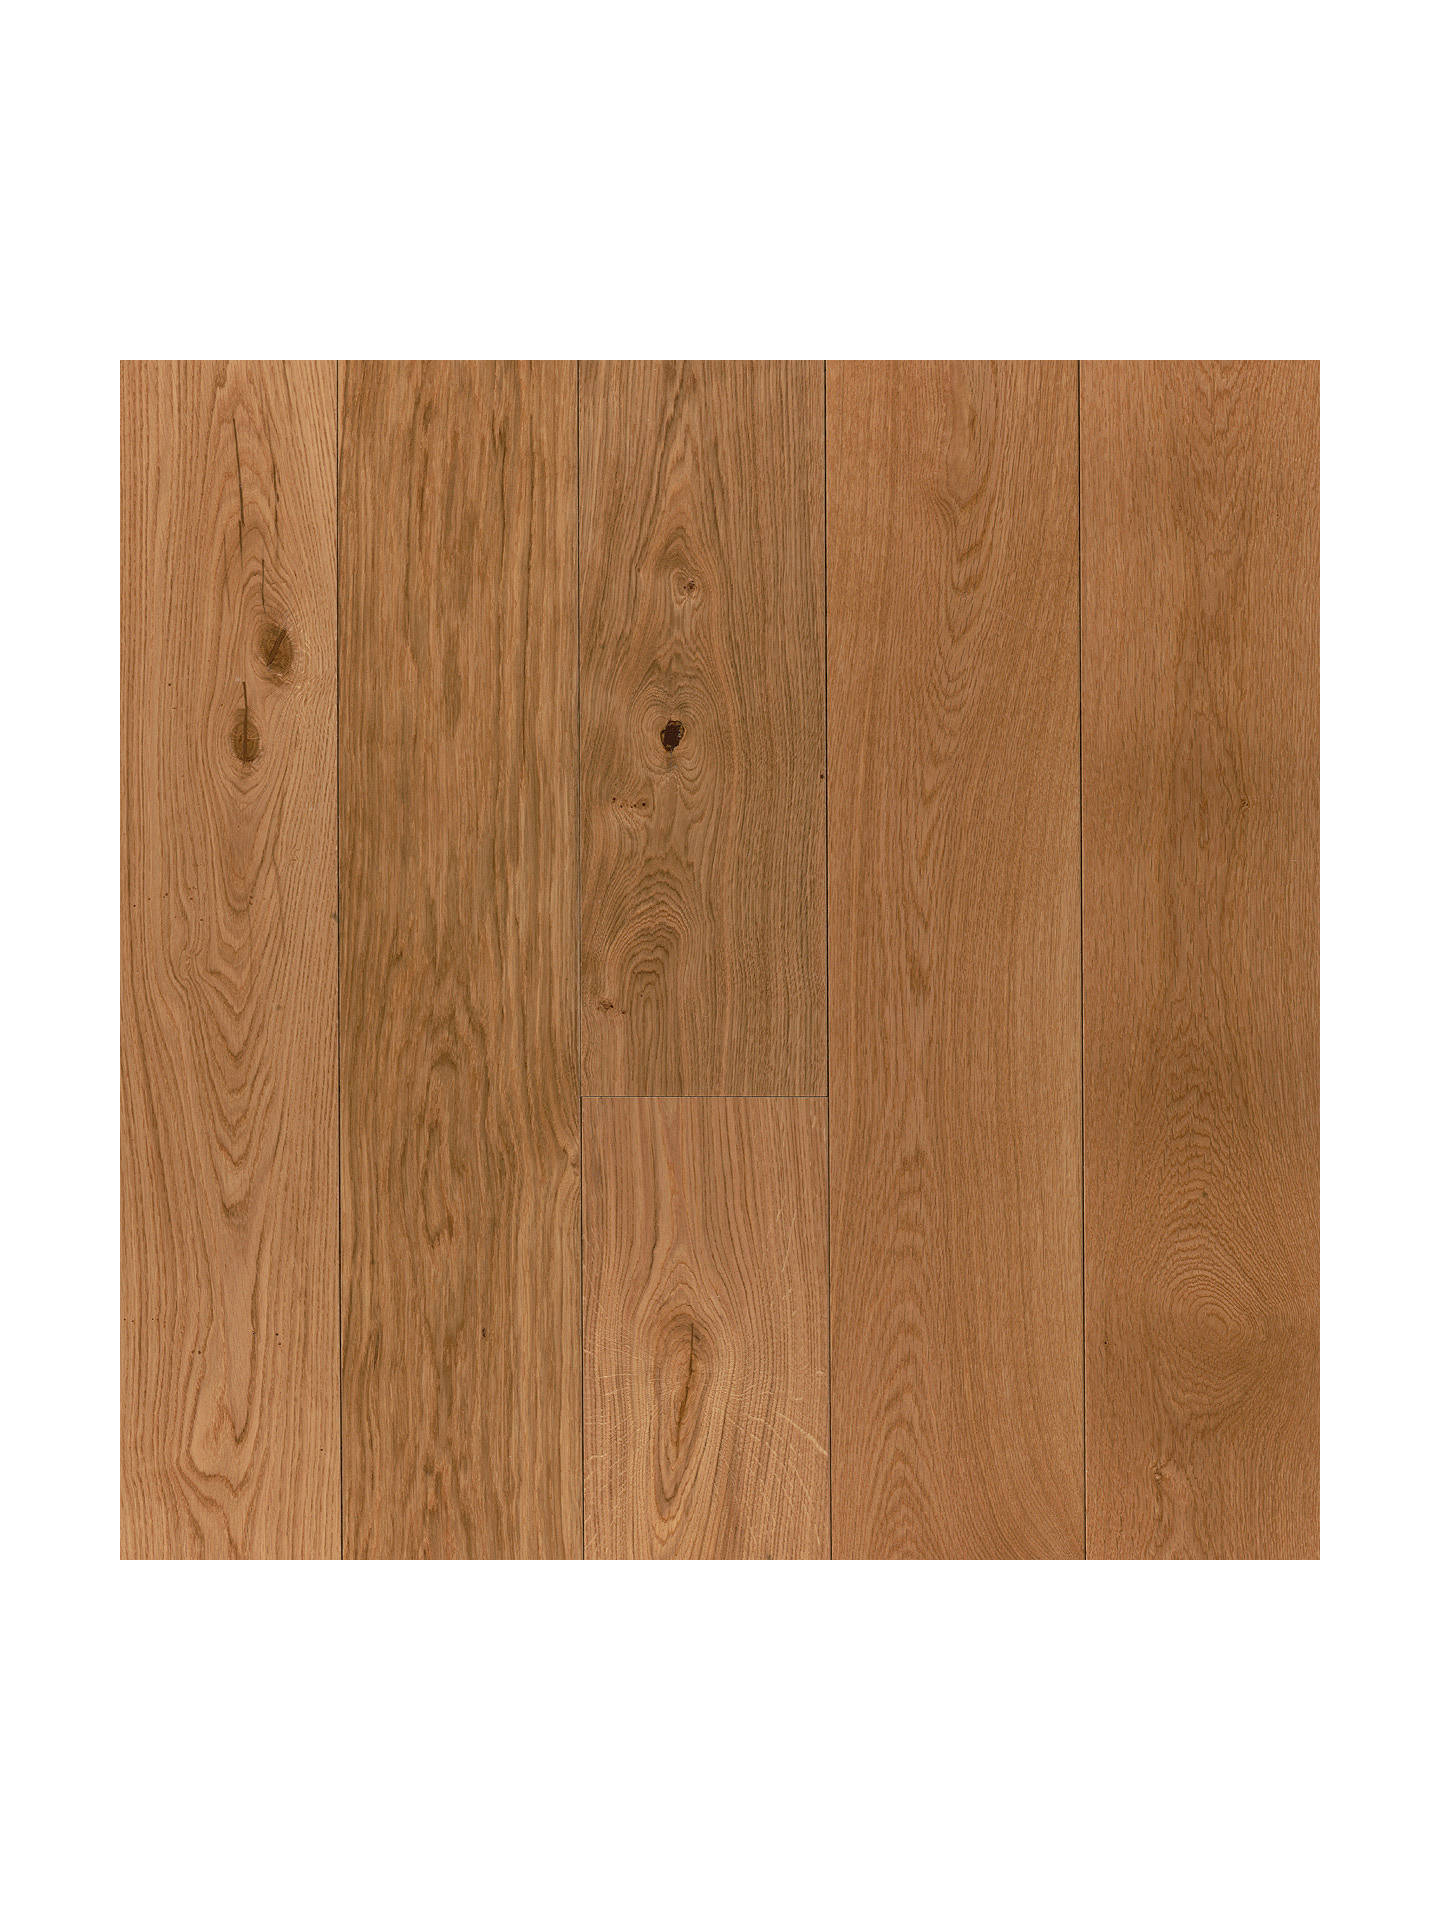 BuyTed Todd Cleeve Hill Engineered Wood Flooring, Brailes Online at johnlewis.com